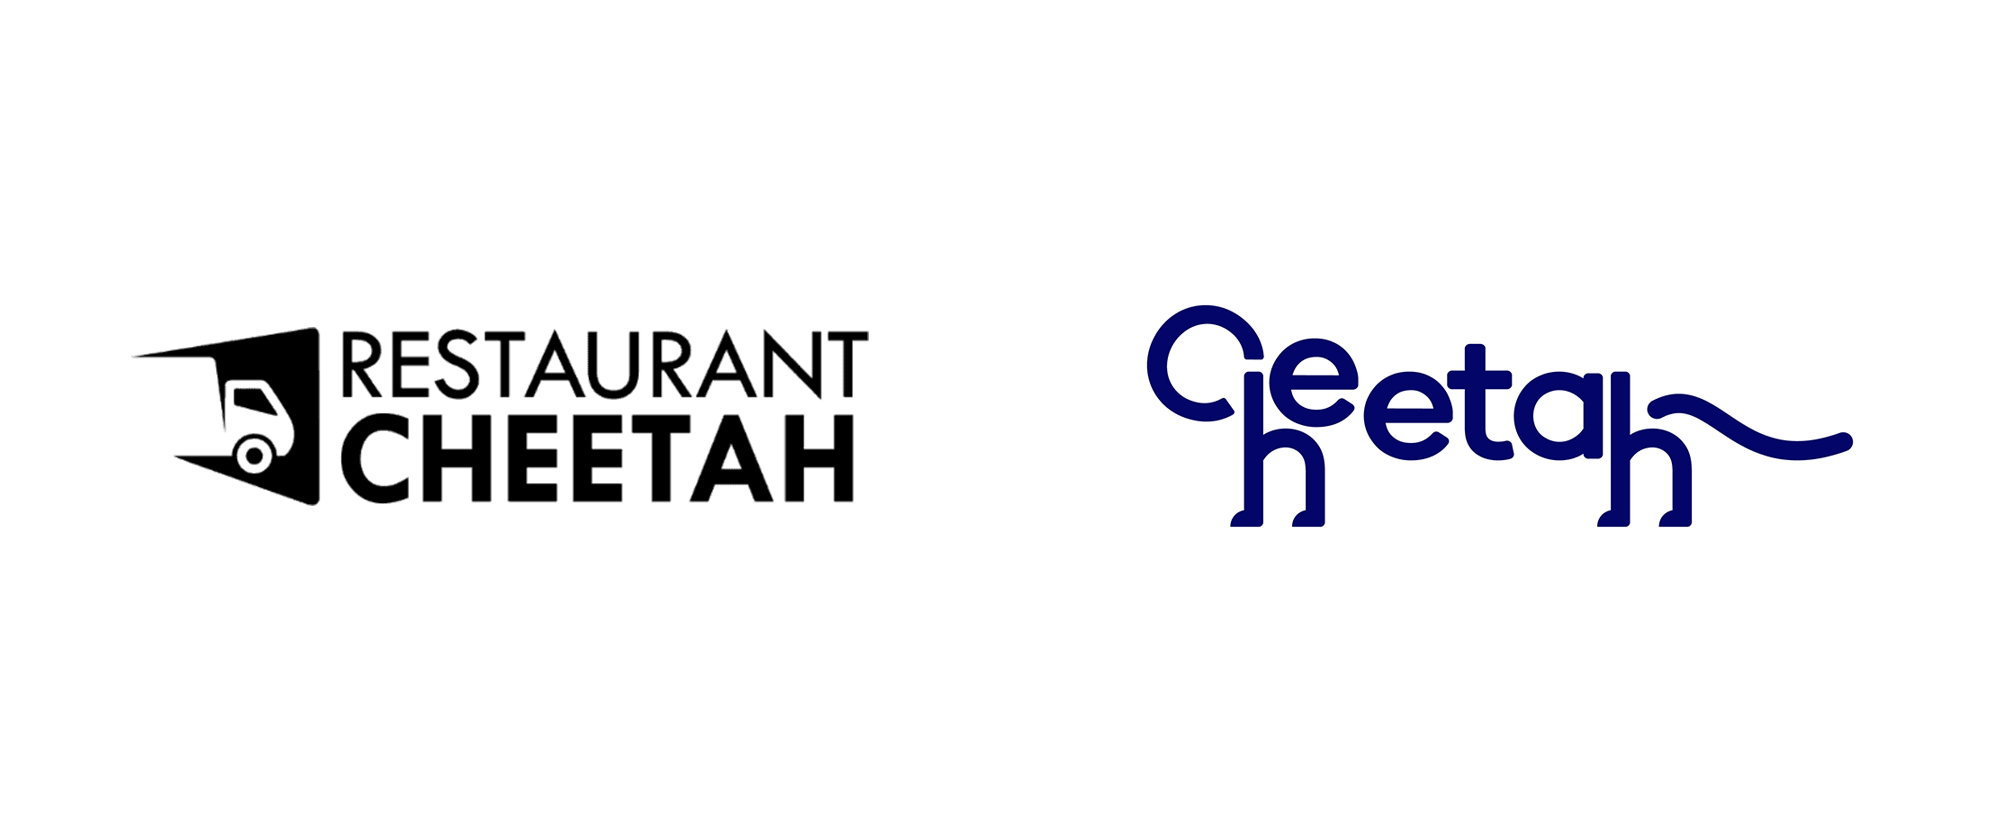 New Logo and Identity for Cheetah by Moving Brands